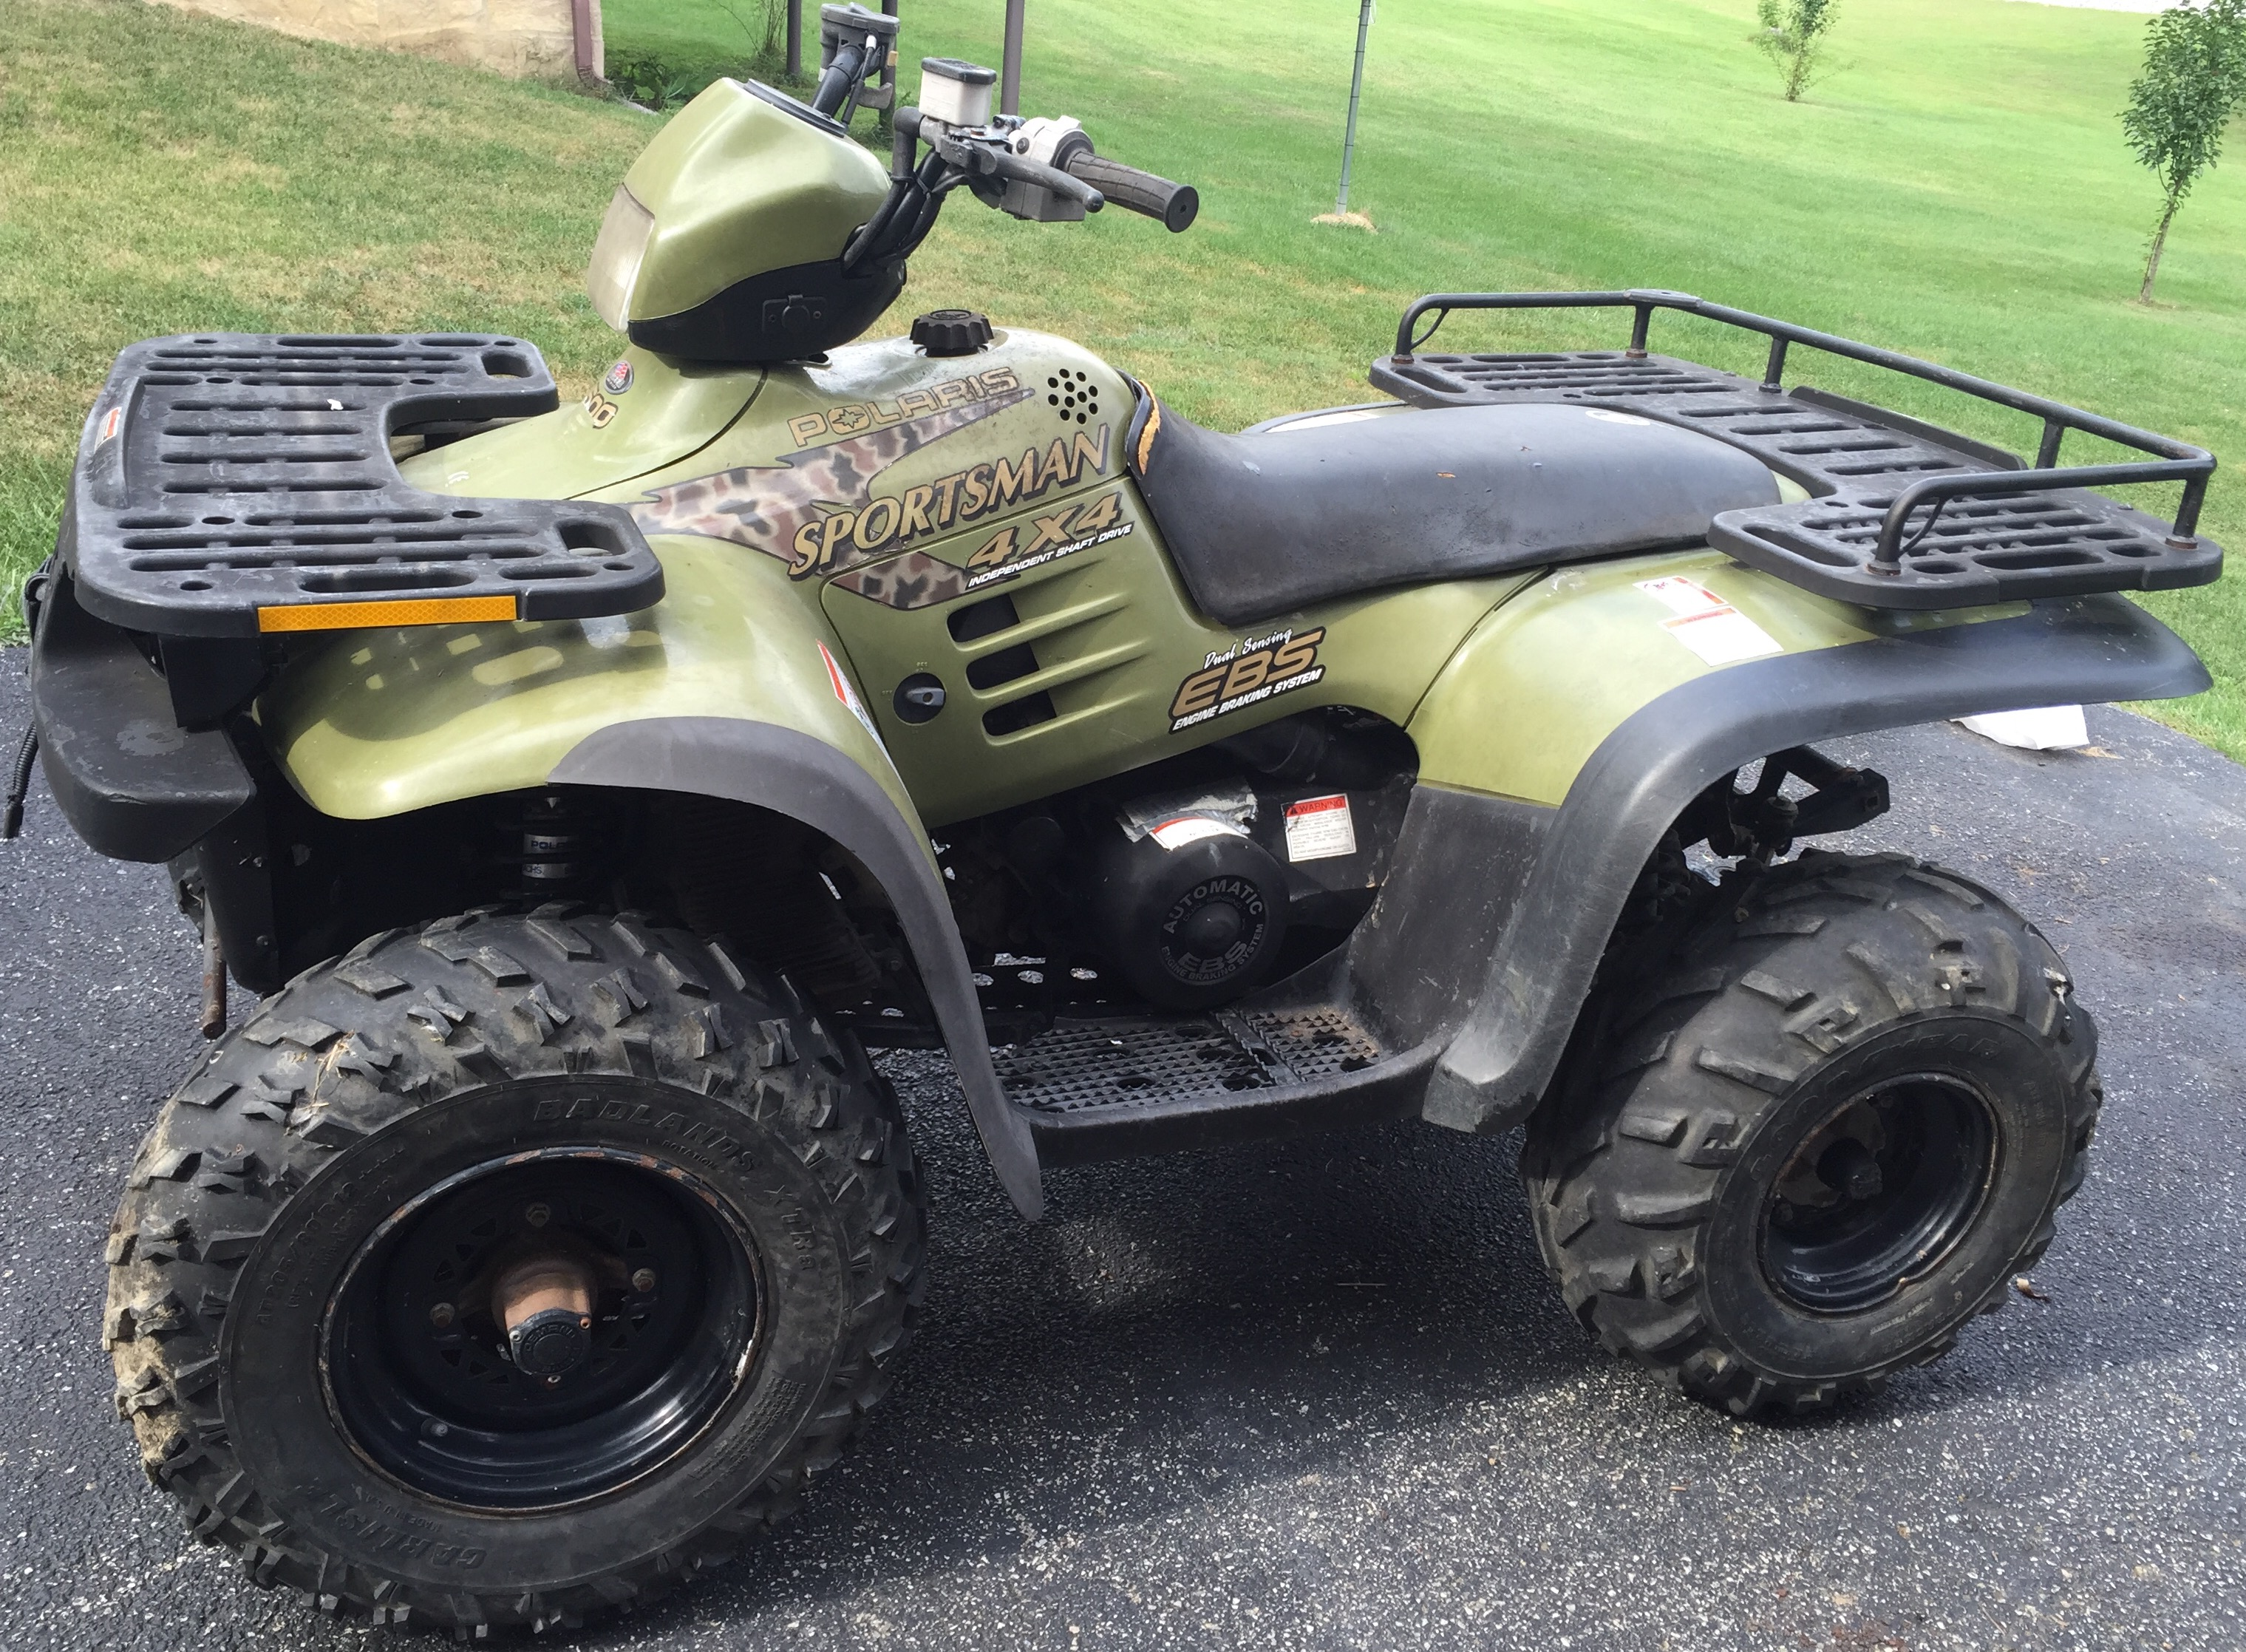 1996 Polaris Sportsman 500 H O Pics Specs And